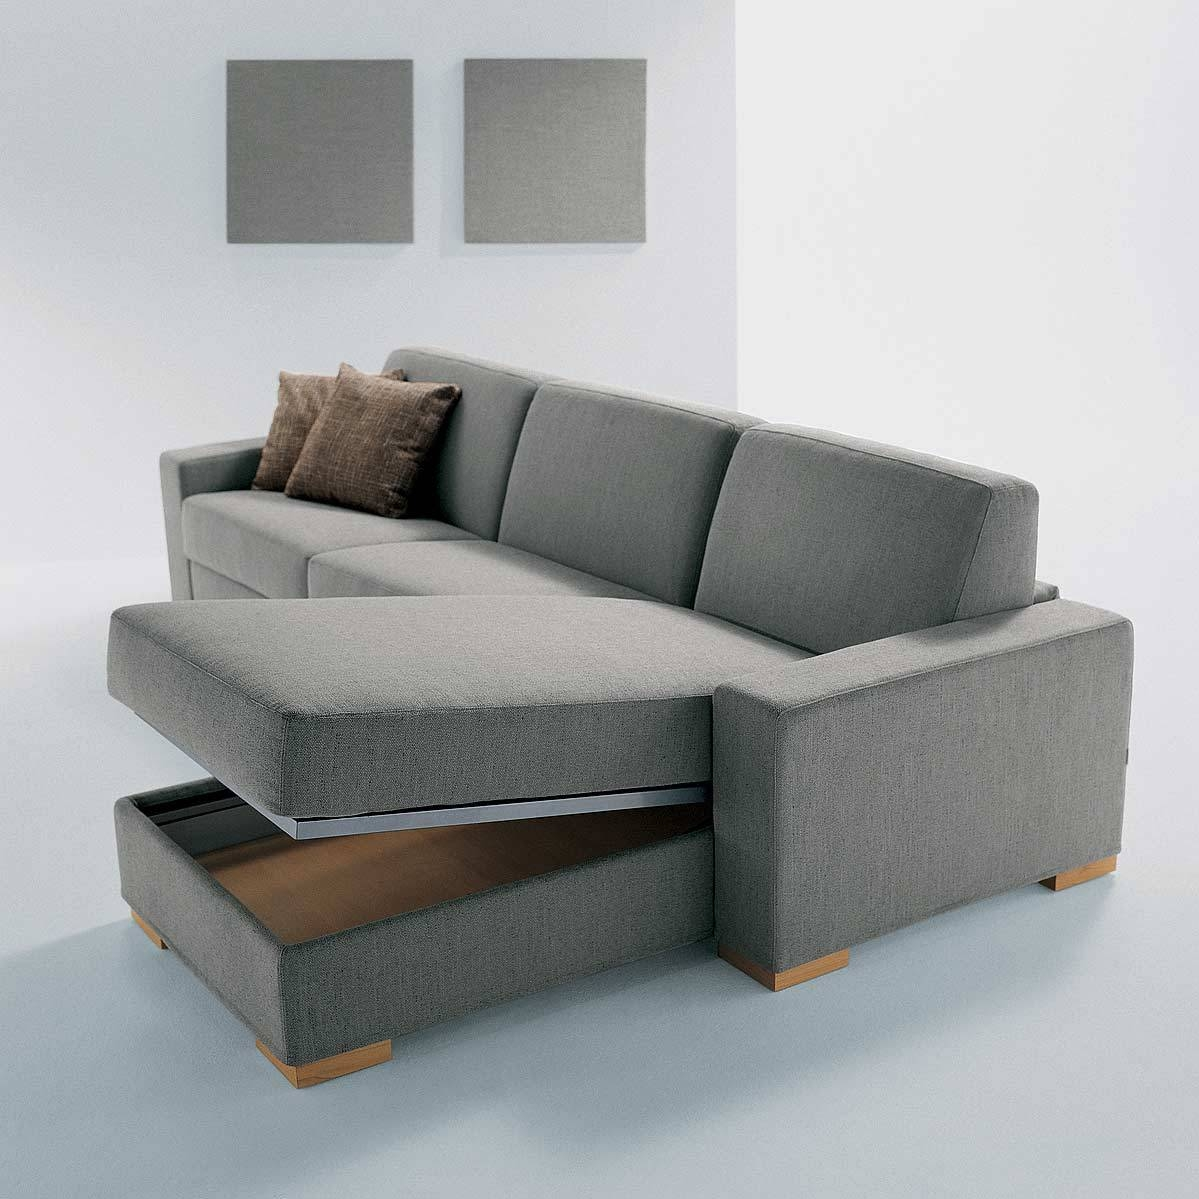 Manstad Sectional Sofa Bed & Storage From Ikea - Cleanupflorida for Storage Sofa Ikea (Image 22 of 25)